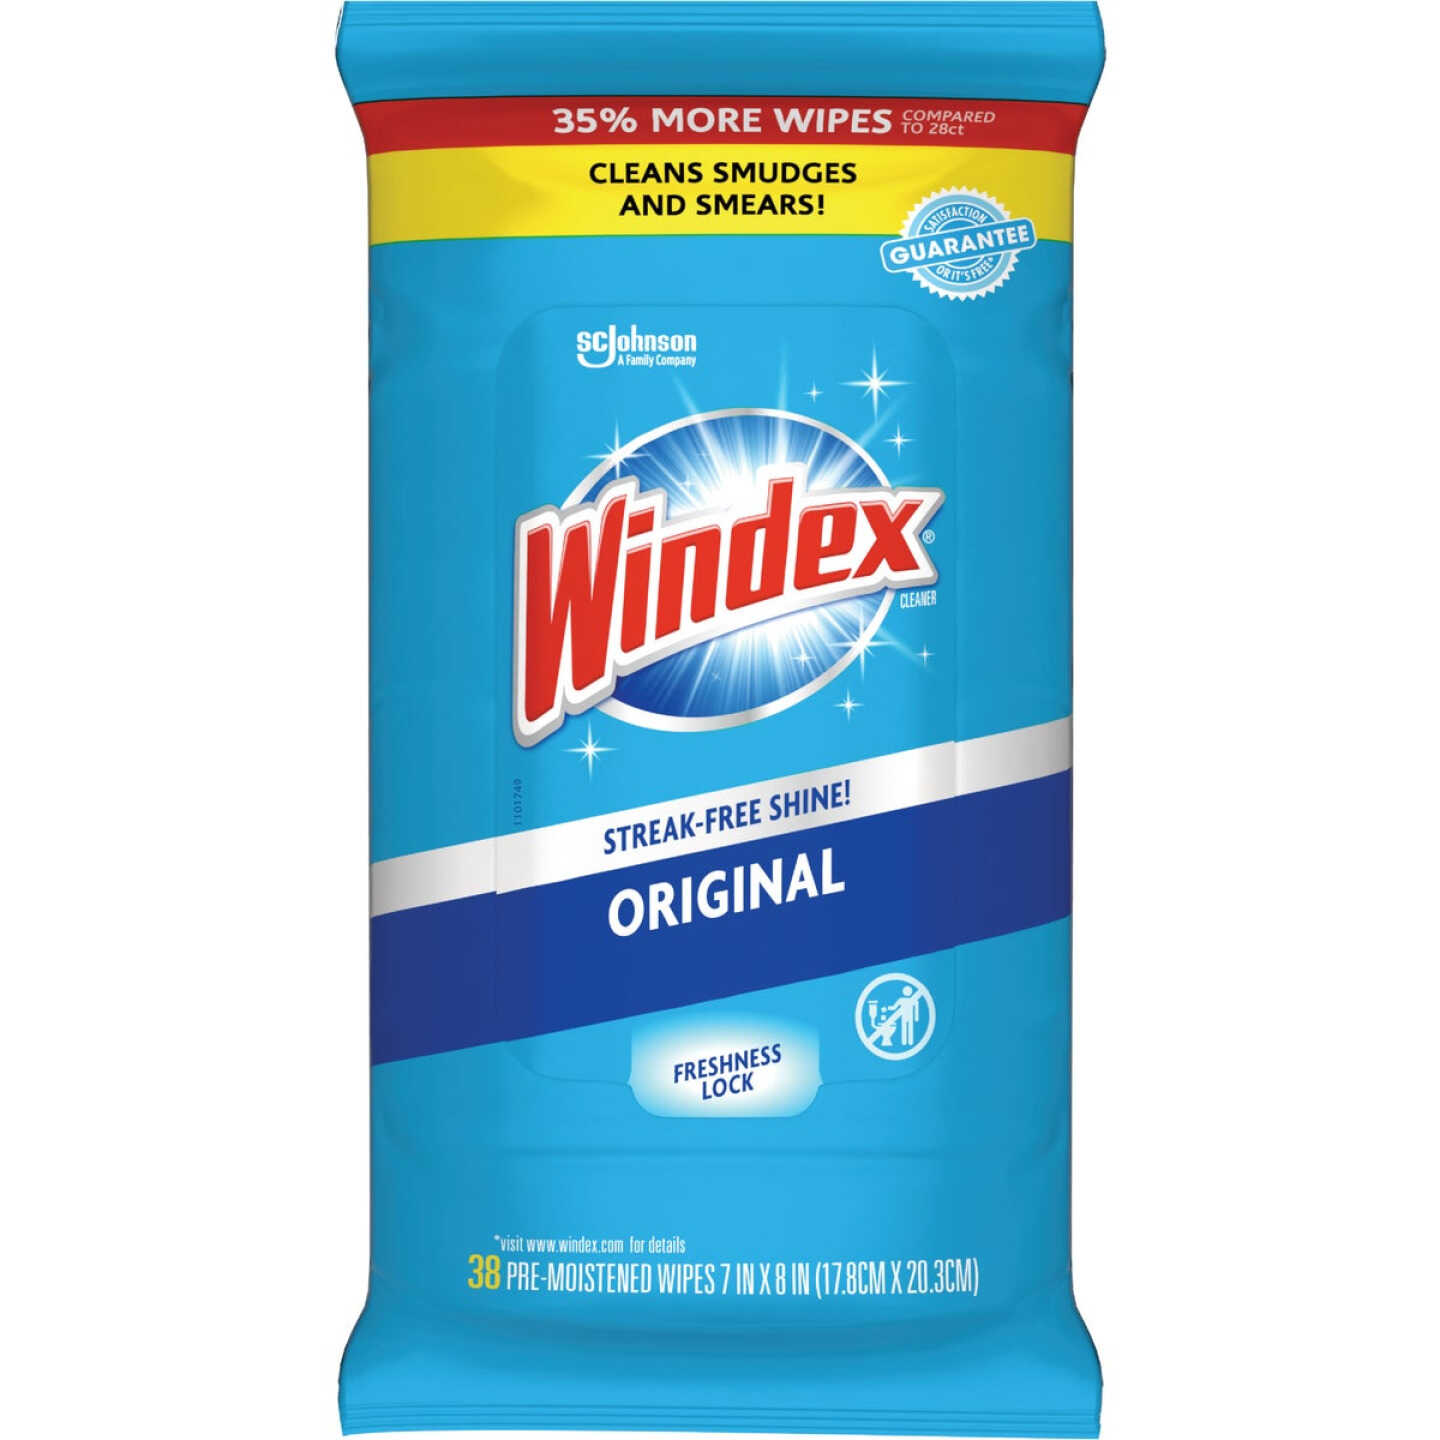 Windex Original Glass Cleaner Wipes (38-Count) Image 1